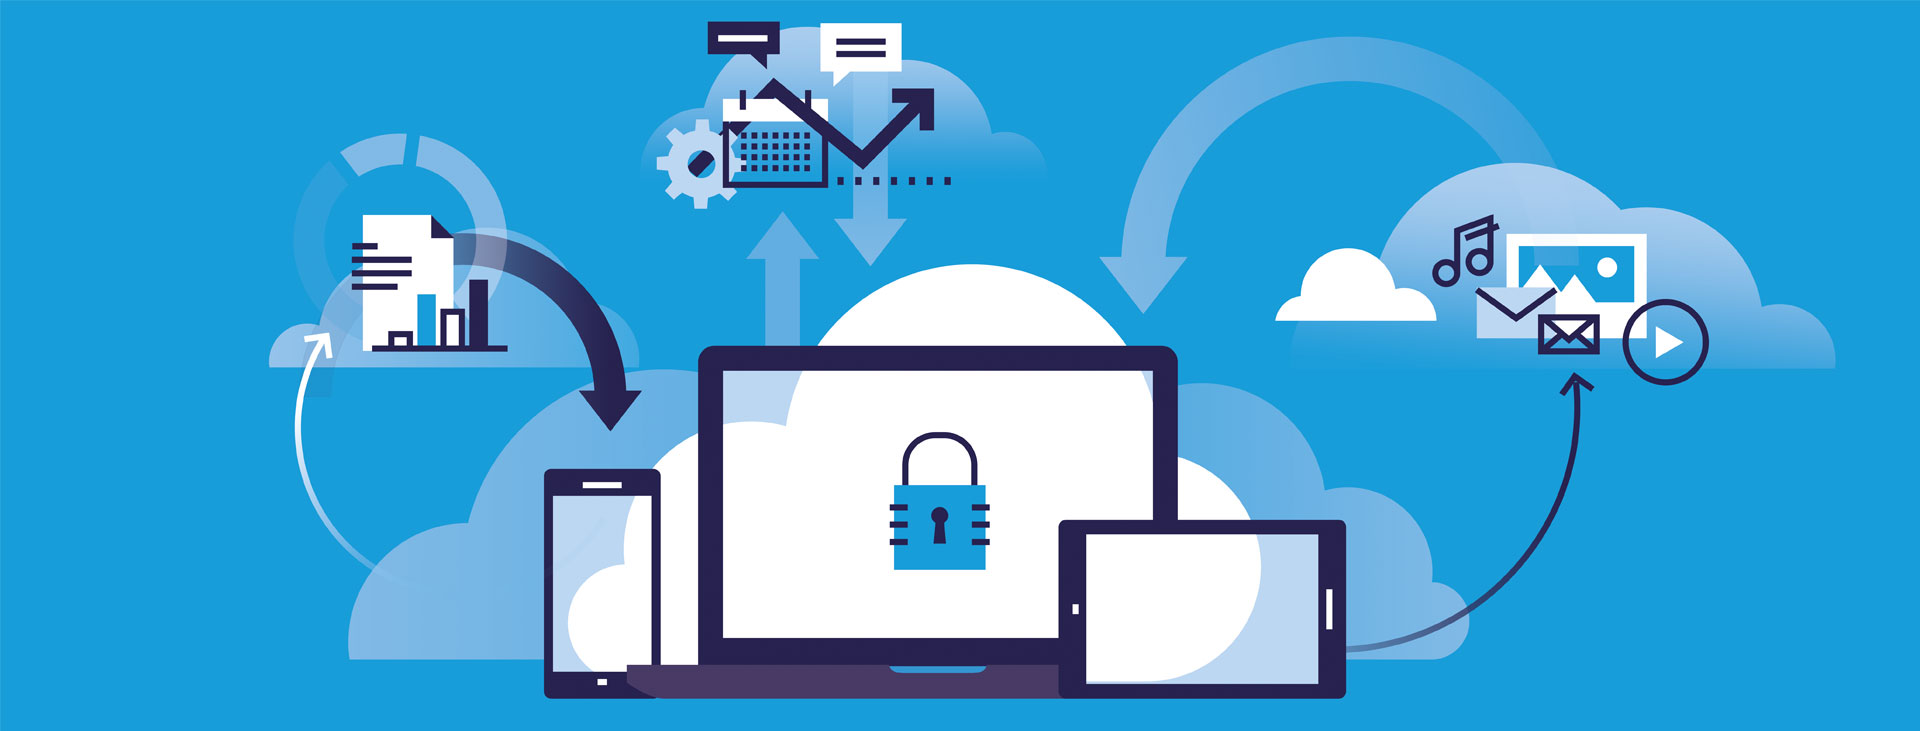 Safer Internet Day: How to improve your website's security in 2018